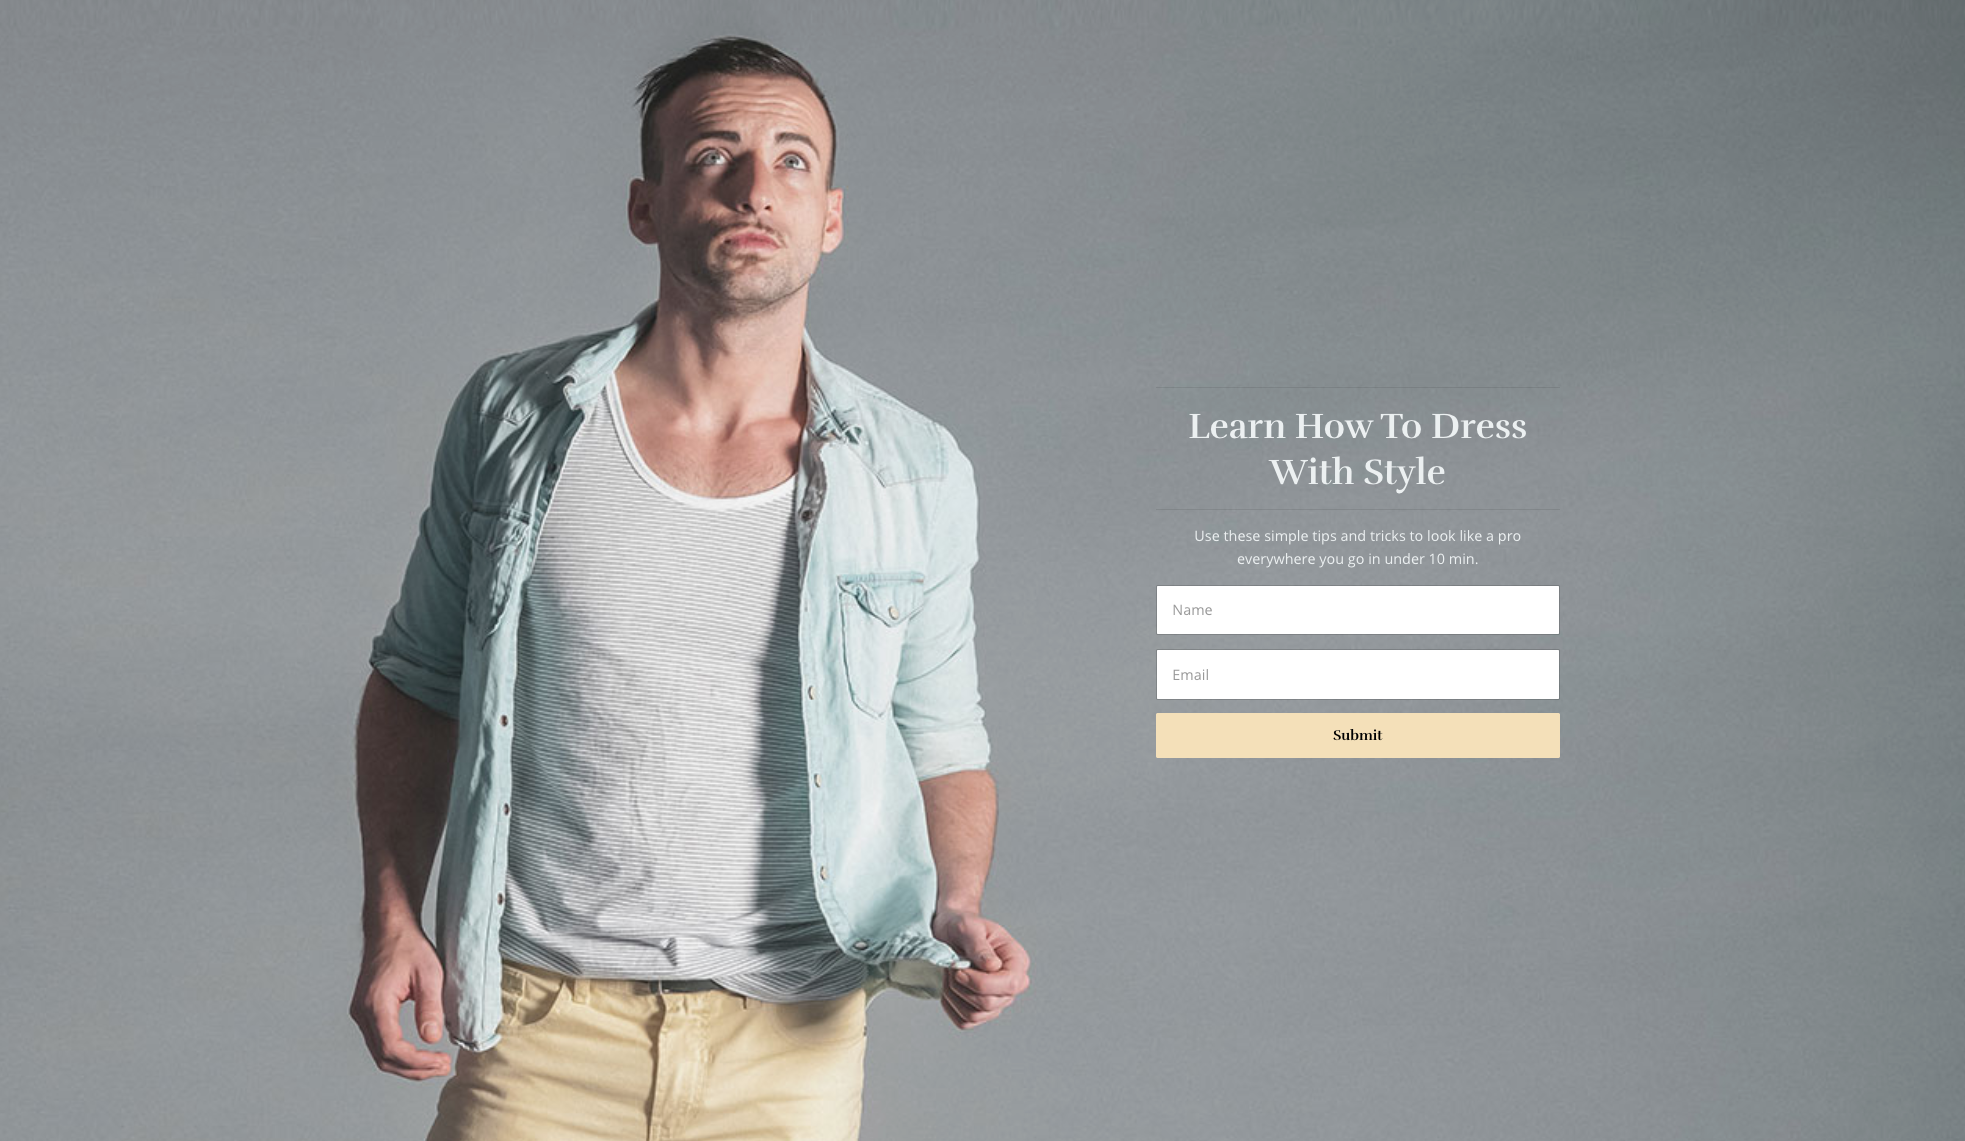 Landing page with a large hero image of a young man wearing trendy clothing, looking off in the distance